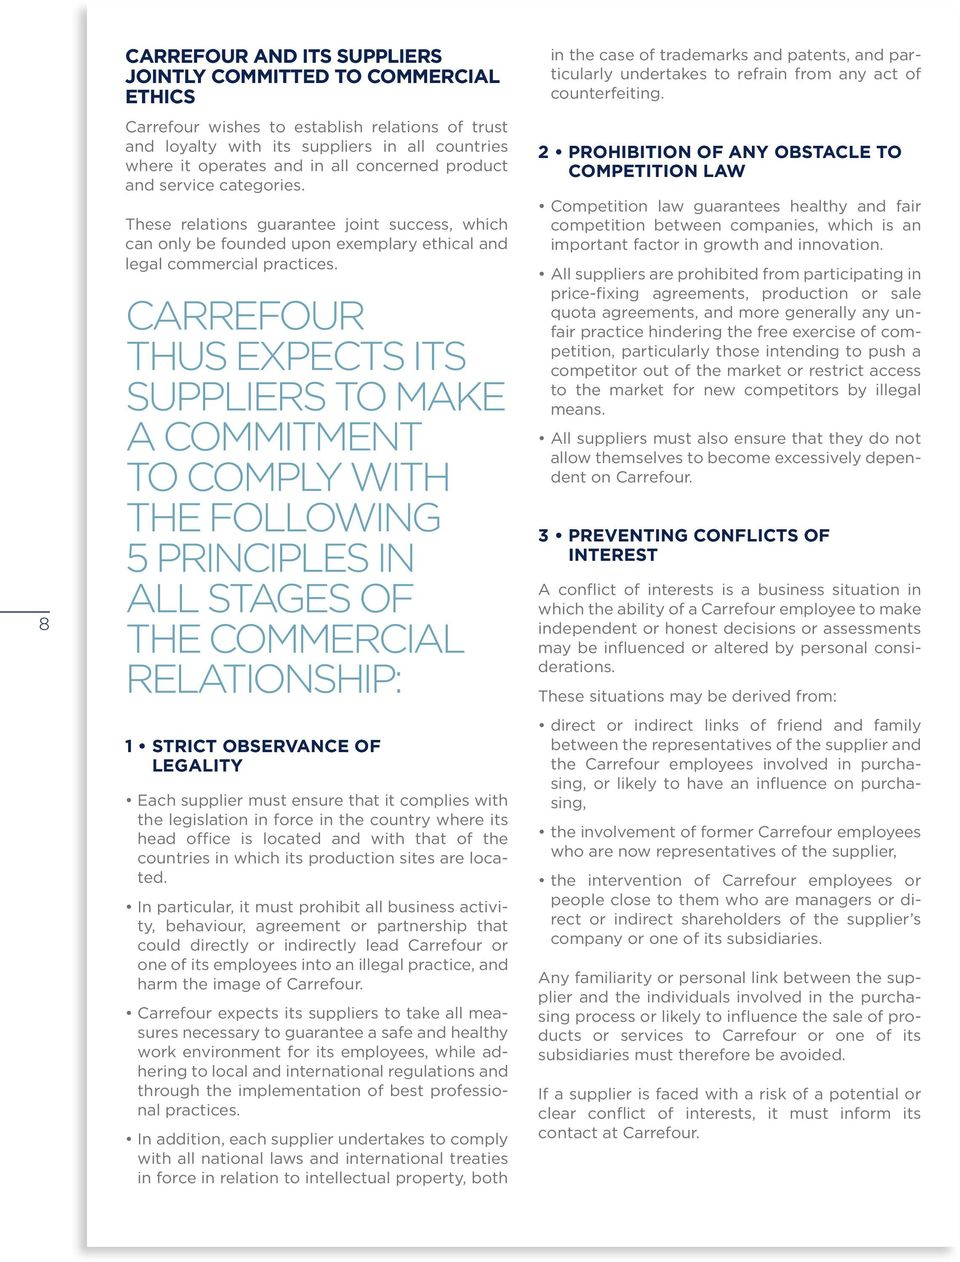 CARREFOUR THUS EXPECTS ITS SUPPLIERS TO MAKE A COMMITMENT TO COMPLY WITH THE FOLLOWING 5 PRINCIPLES IN ALL STAGES OF THE COMMERCIAL RELATIONSHIP: 1 STRICT OBSERVANCE OF LEGALITY Each supplier must